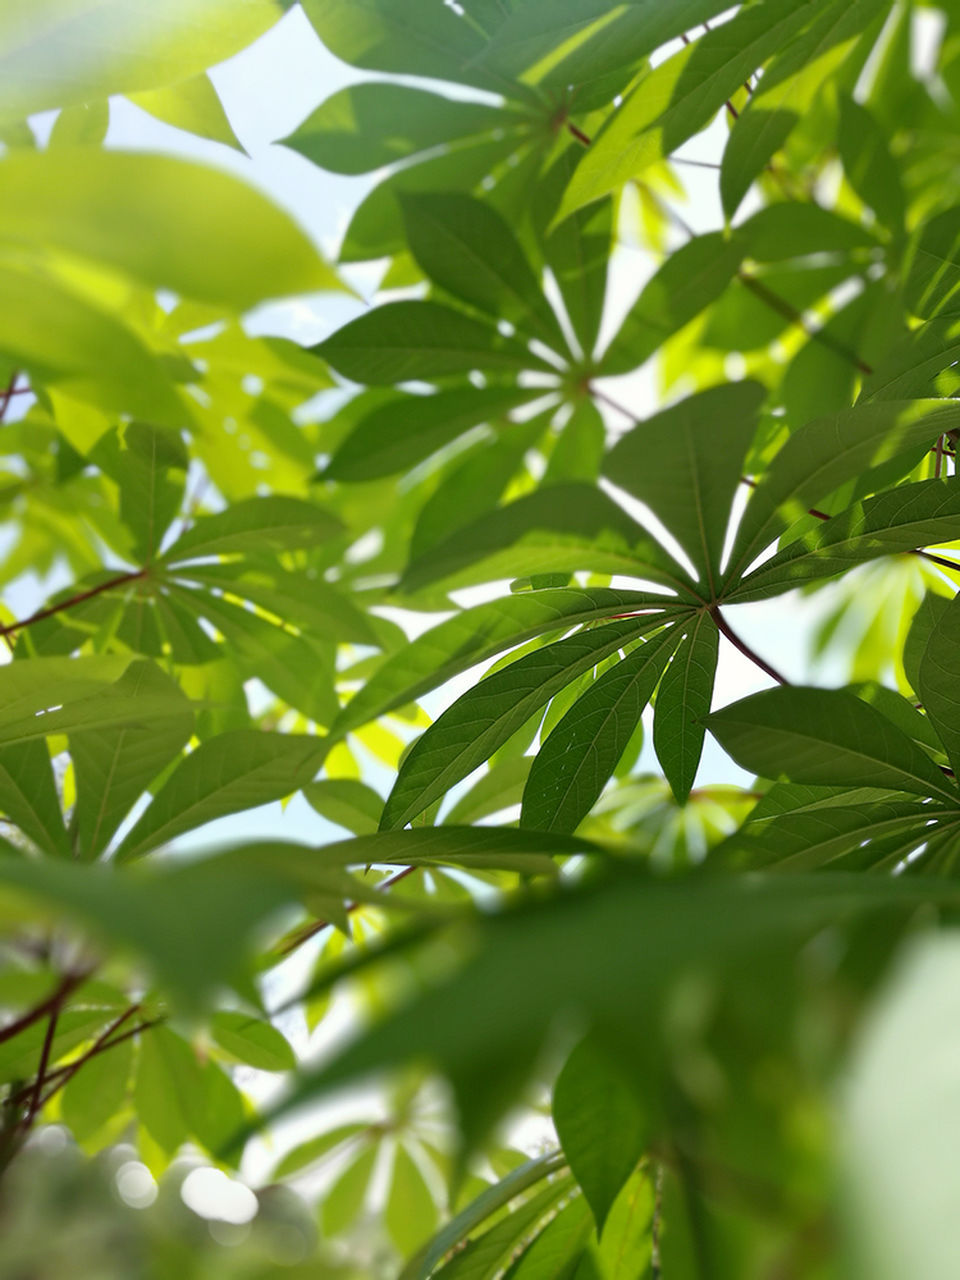 leaf, green color, growth, plant, nature, close-up, tree, day, outdoors, no people, beauty in nature, branch, freshness